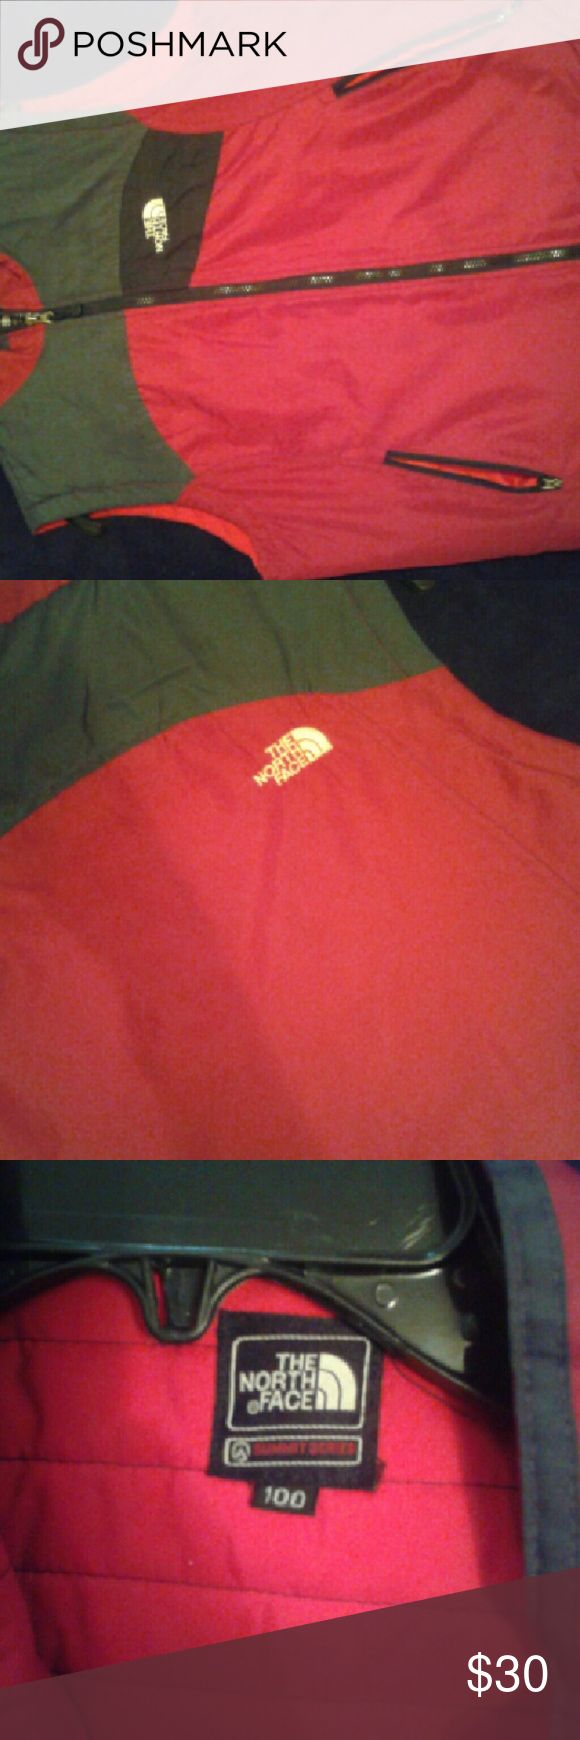 Authentic North Face Vest Red and Grey North Face vest North Face Jackets & Coats Vests